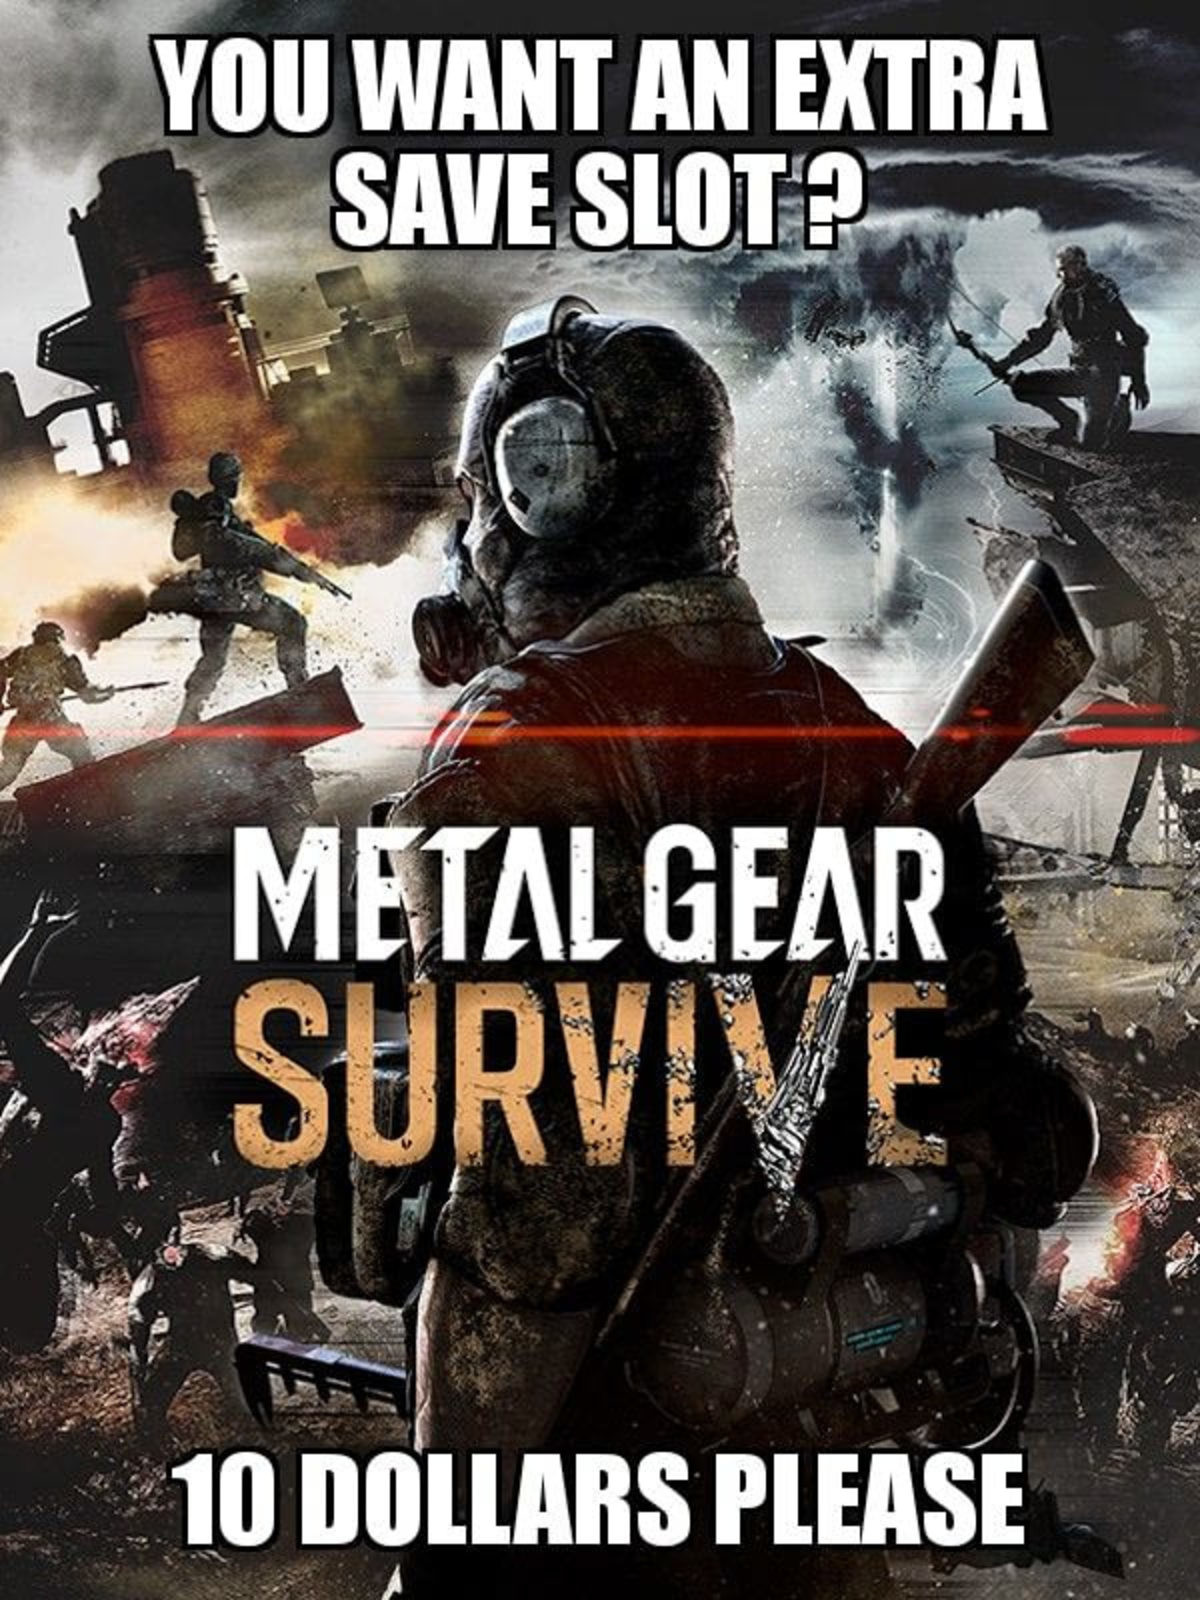 Metal Gear Passing. join list: VideoGameHumor (1694 subs)Mention Clicks: 566743Msgs Sent: 5336450Mention History. I LEE Ilene. 10 ll MARS PHASE. Dunkey's latest video on it, well worth the watch